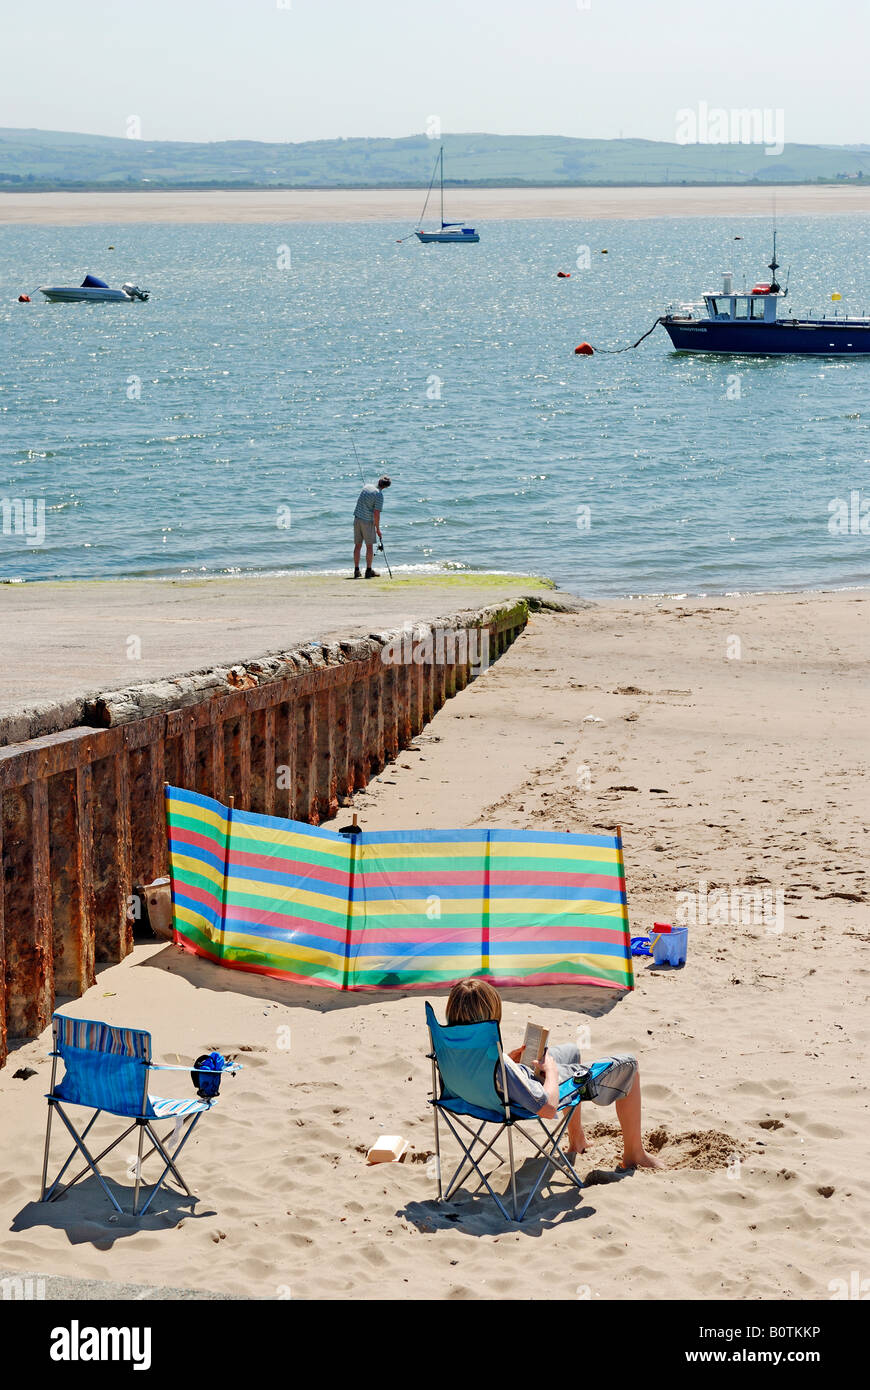 SUNBATHER WITH BOATS IN THE BACKGROUND IN THE SEASIDE TOWN OF ABERDOVEY GWYNEDD WALES Stock Photo